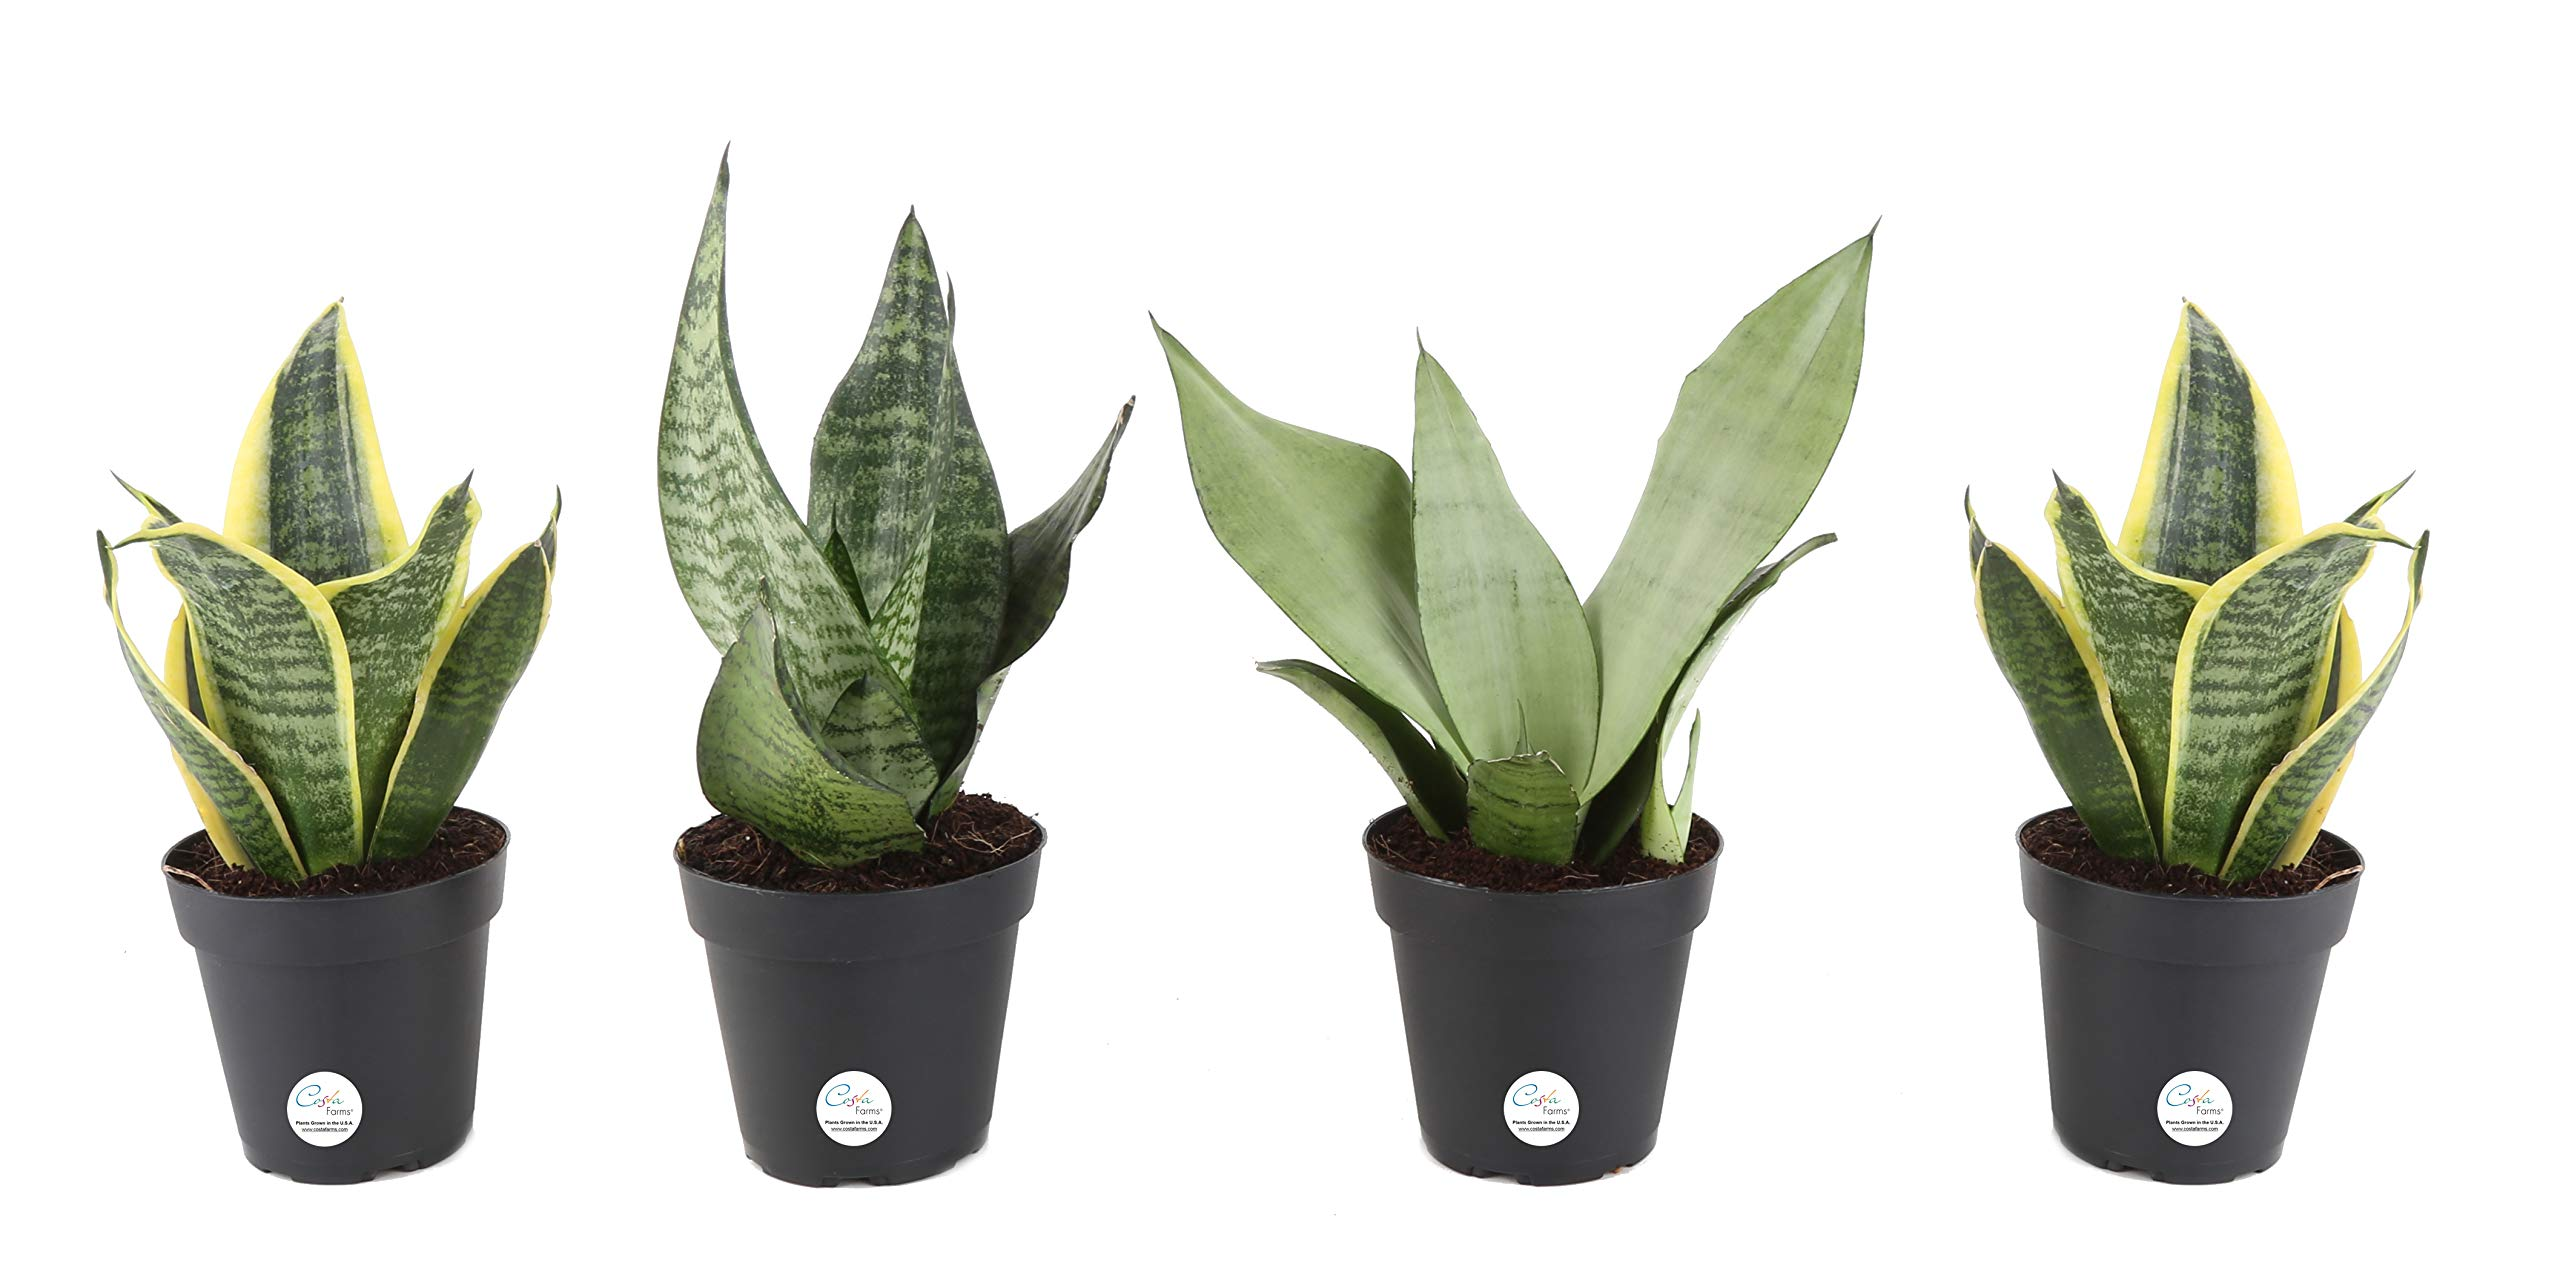 Costa Farms Snake Plant, Mother-in-Law's Tongue, Sansevieria, 4-inch Grow Pot, Easy to Grow, 4-Pack